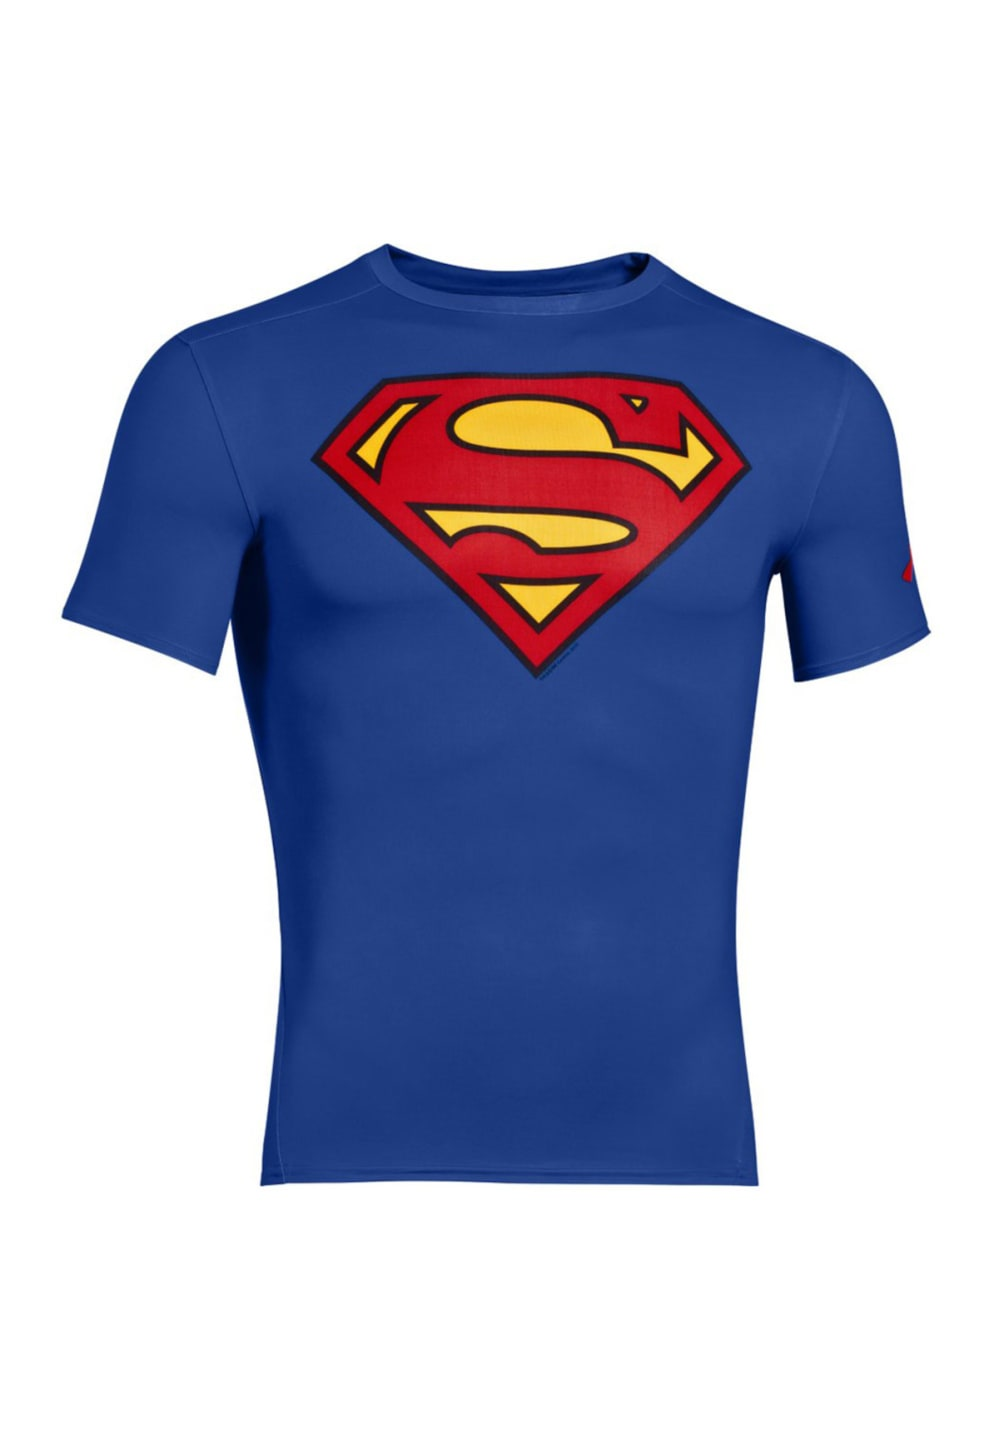 Under Armour Alter Ego Superman Compresion Shirt Hommes Article compression